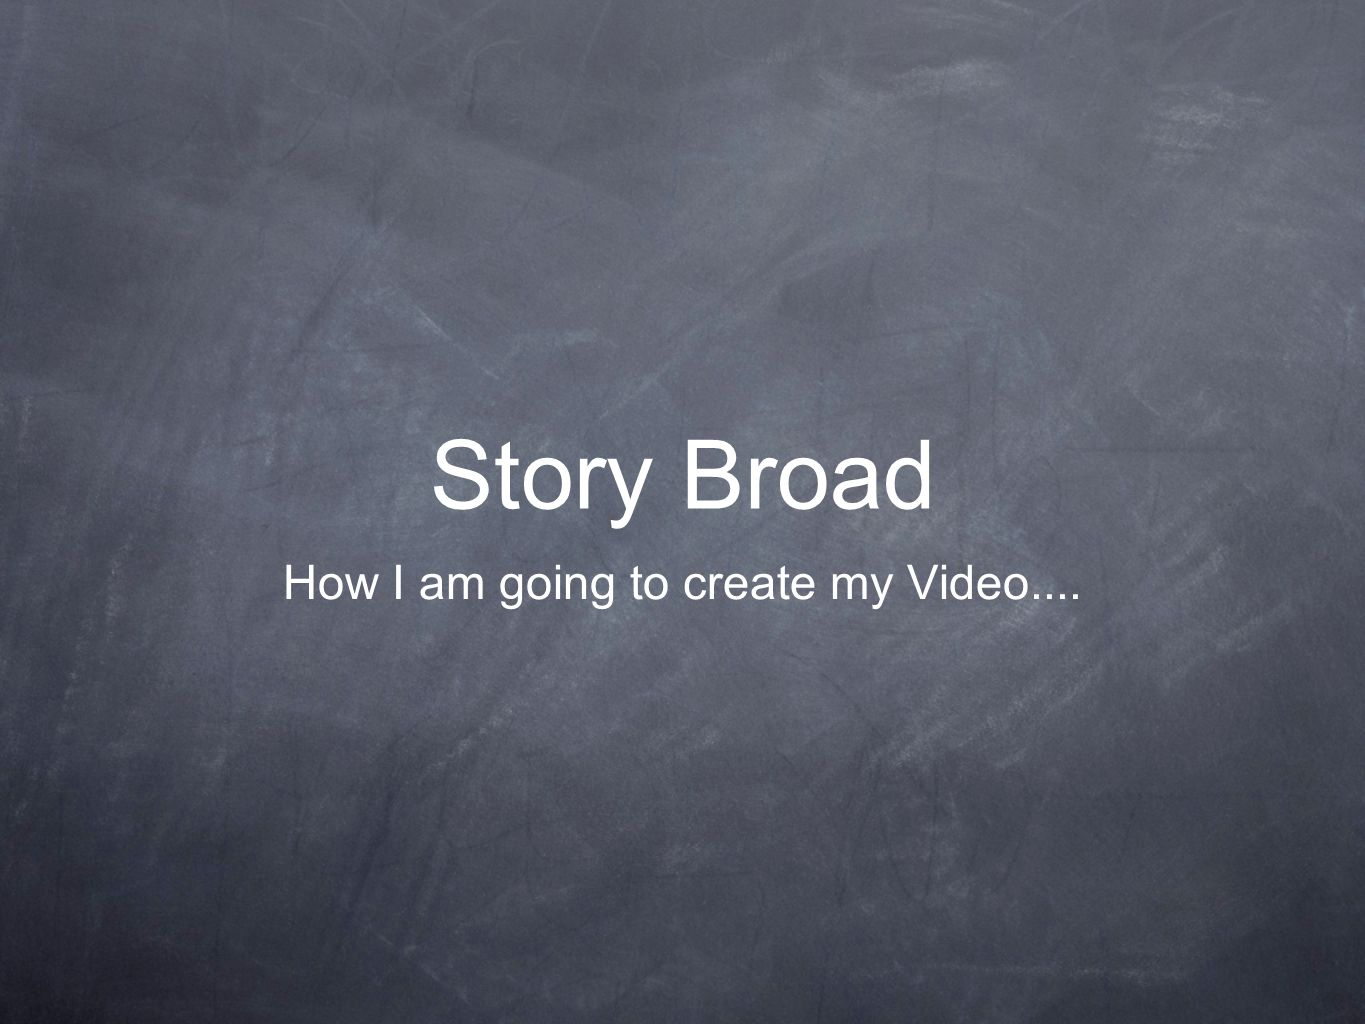 Story Broad How I am going to create my Video....